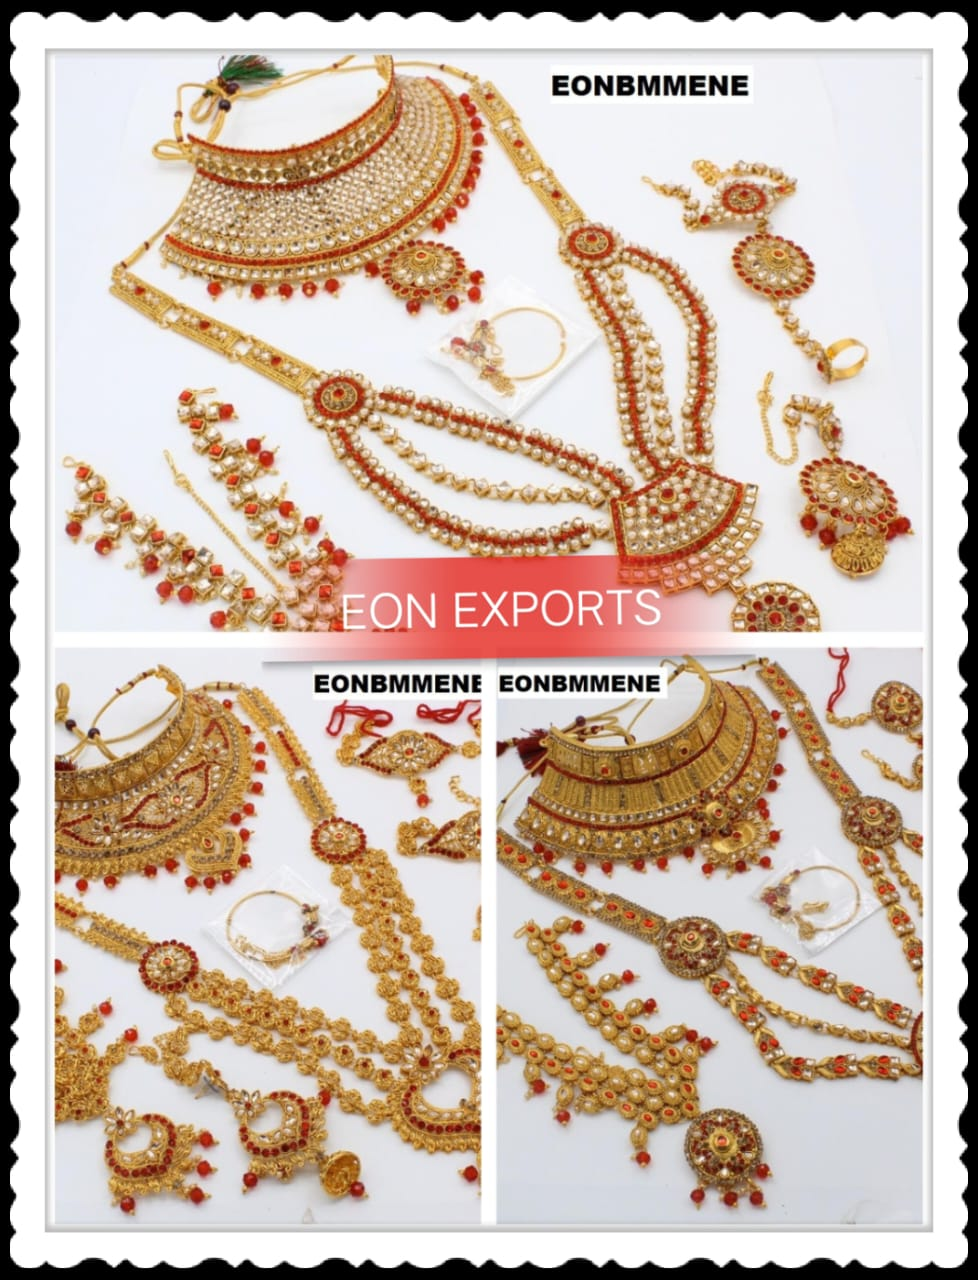 Dallas Indian Jewelry Stores : dallas, indian, jewelry, stores, Imitation, Jewellery, Manufacturers, Artificial,, Fashion